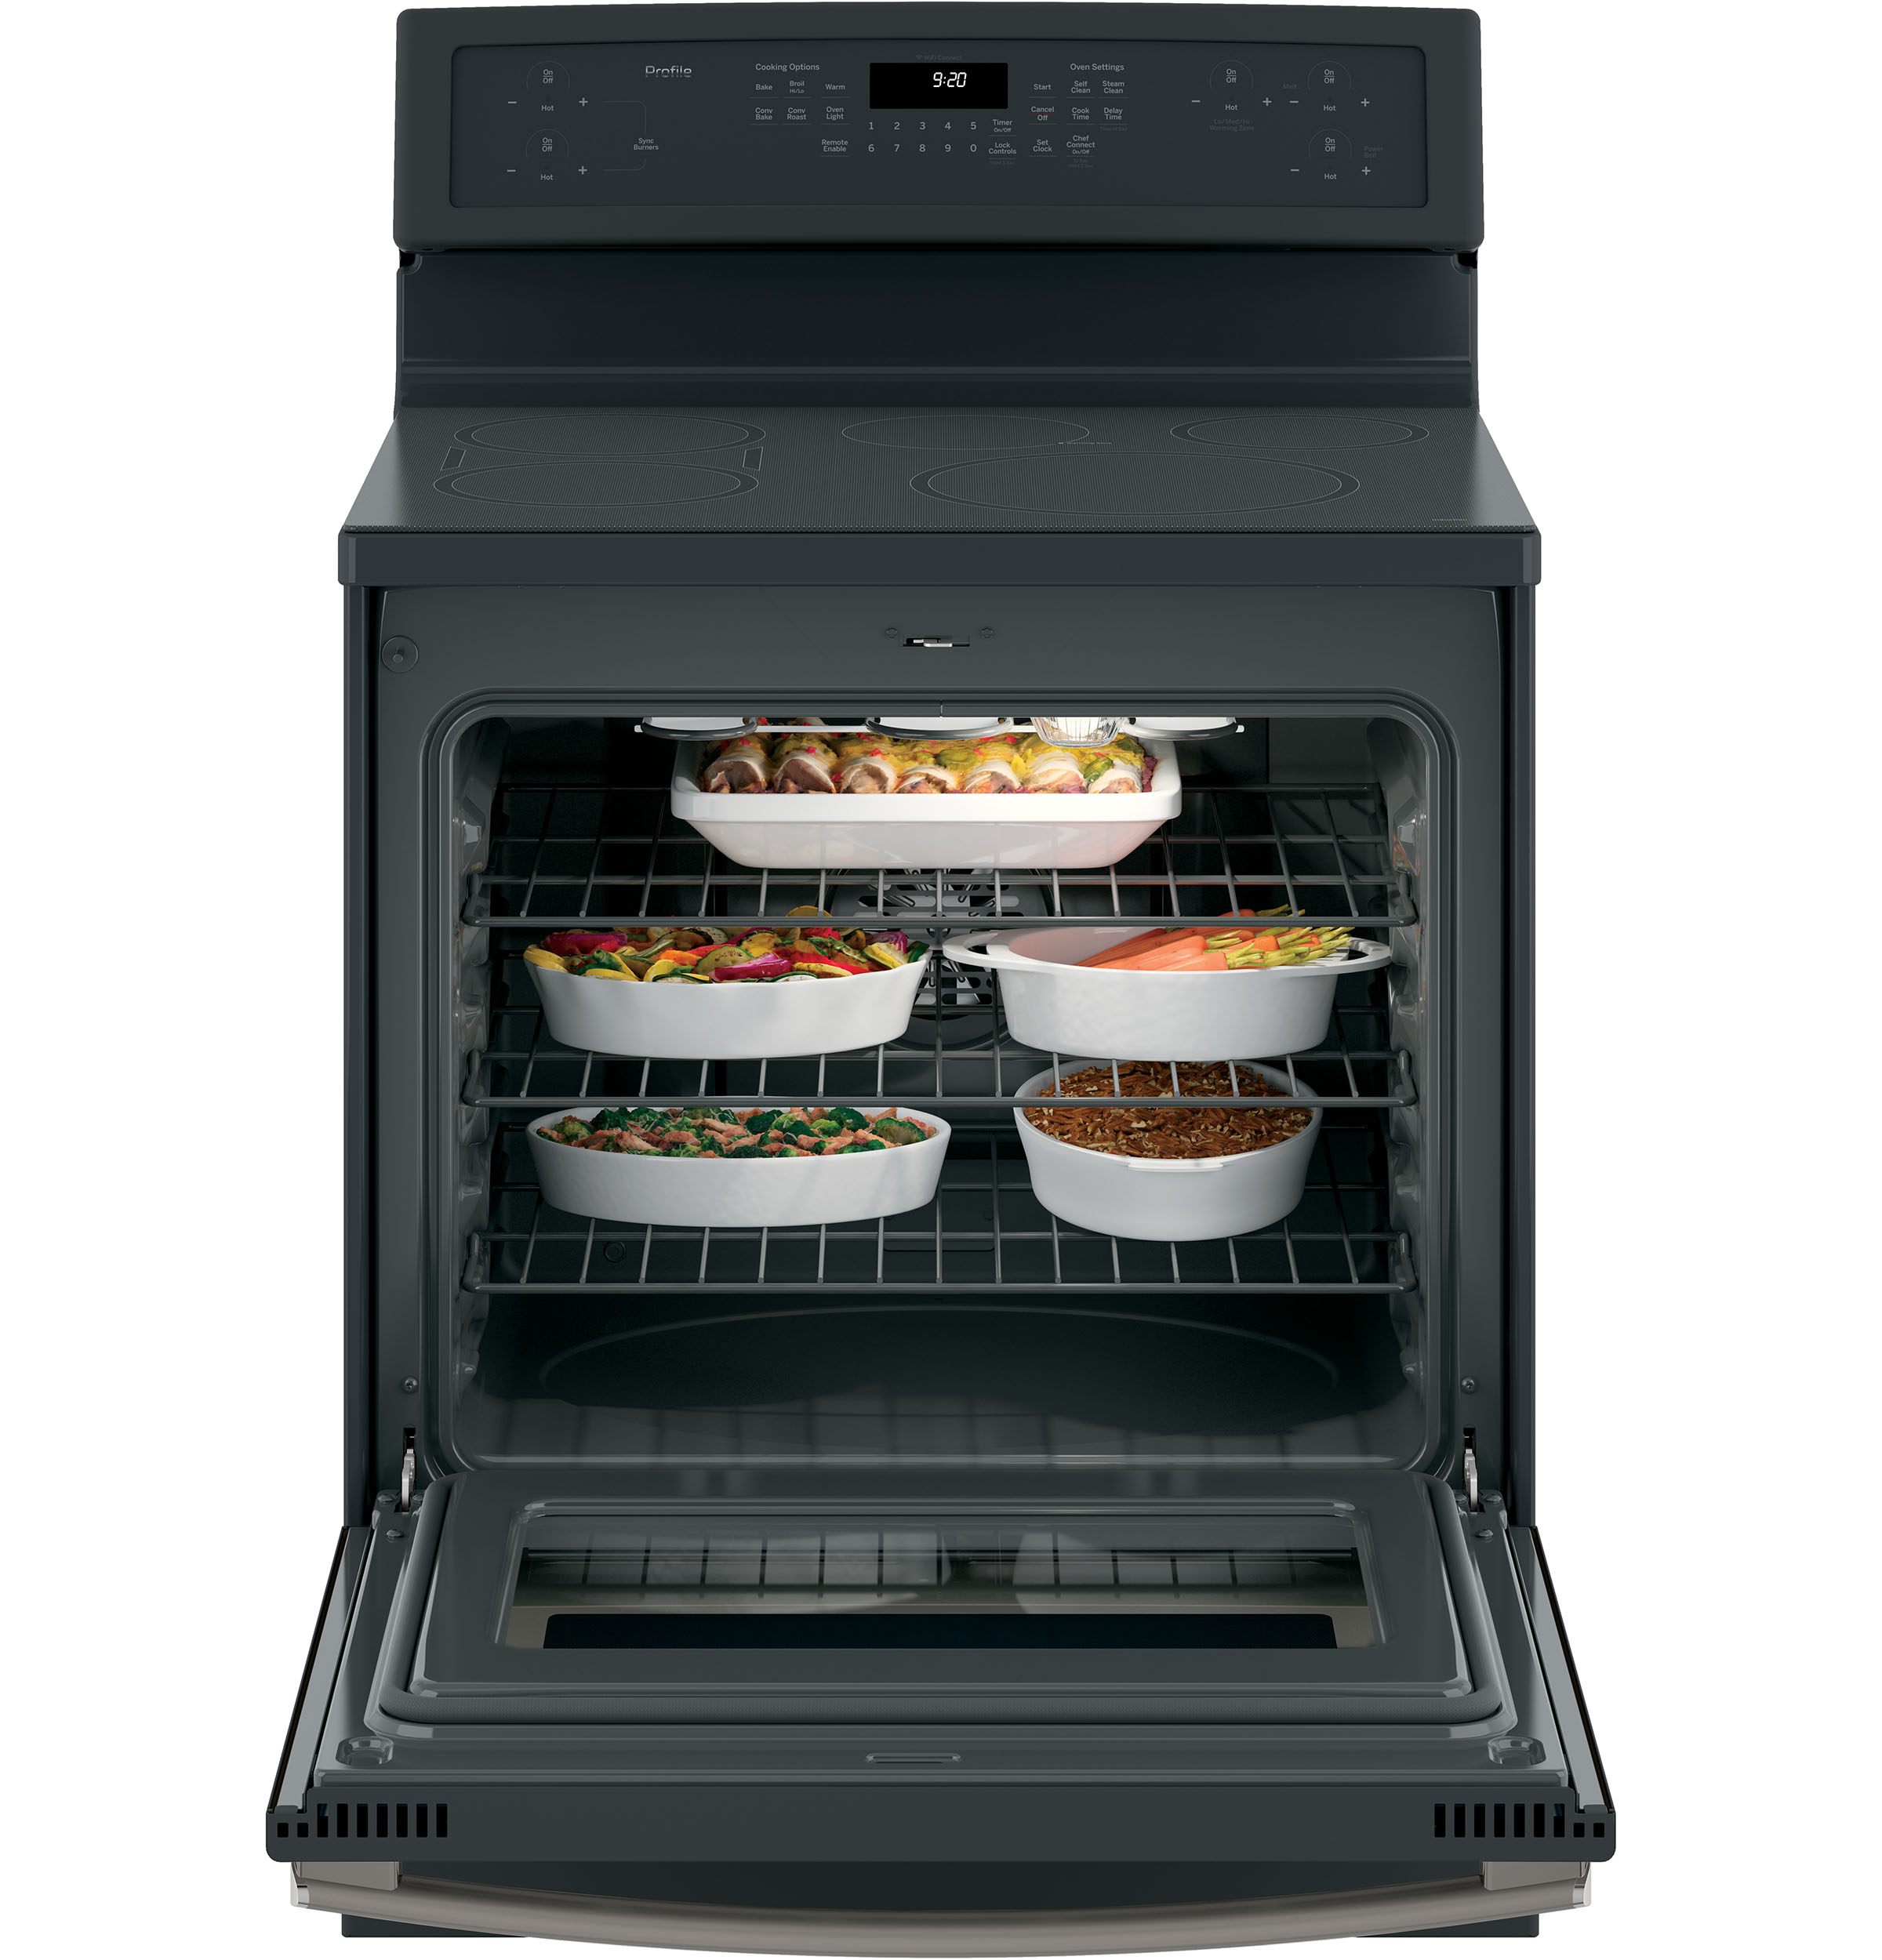 "Model: PHB920FJDS | GE Profile GE Profile™ Series 30"" Free-Standing Convection Range with Induction"